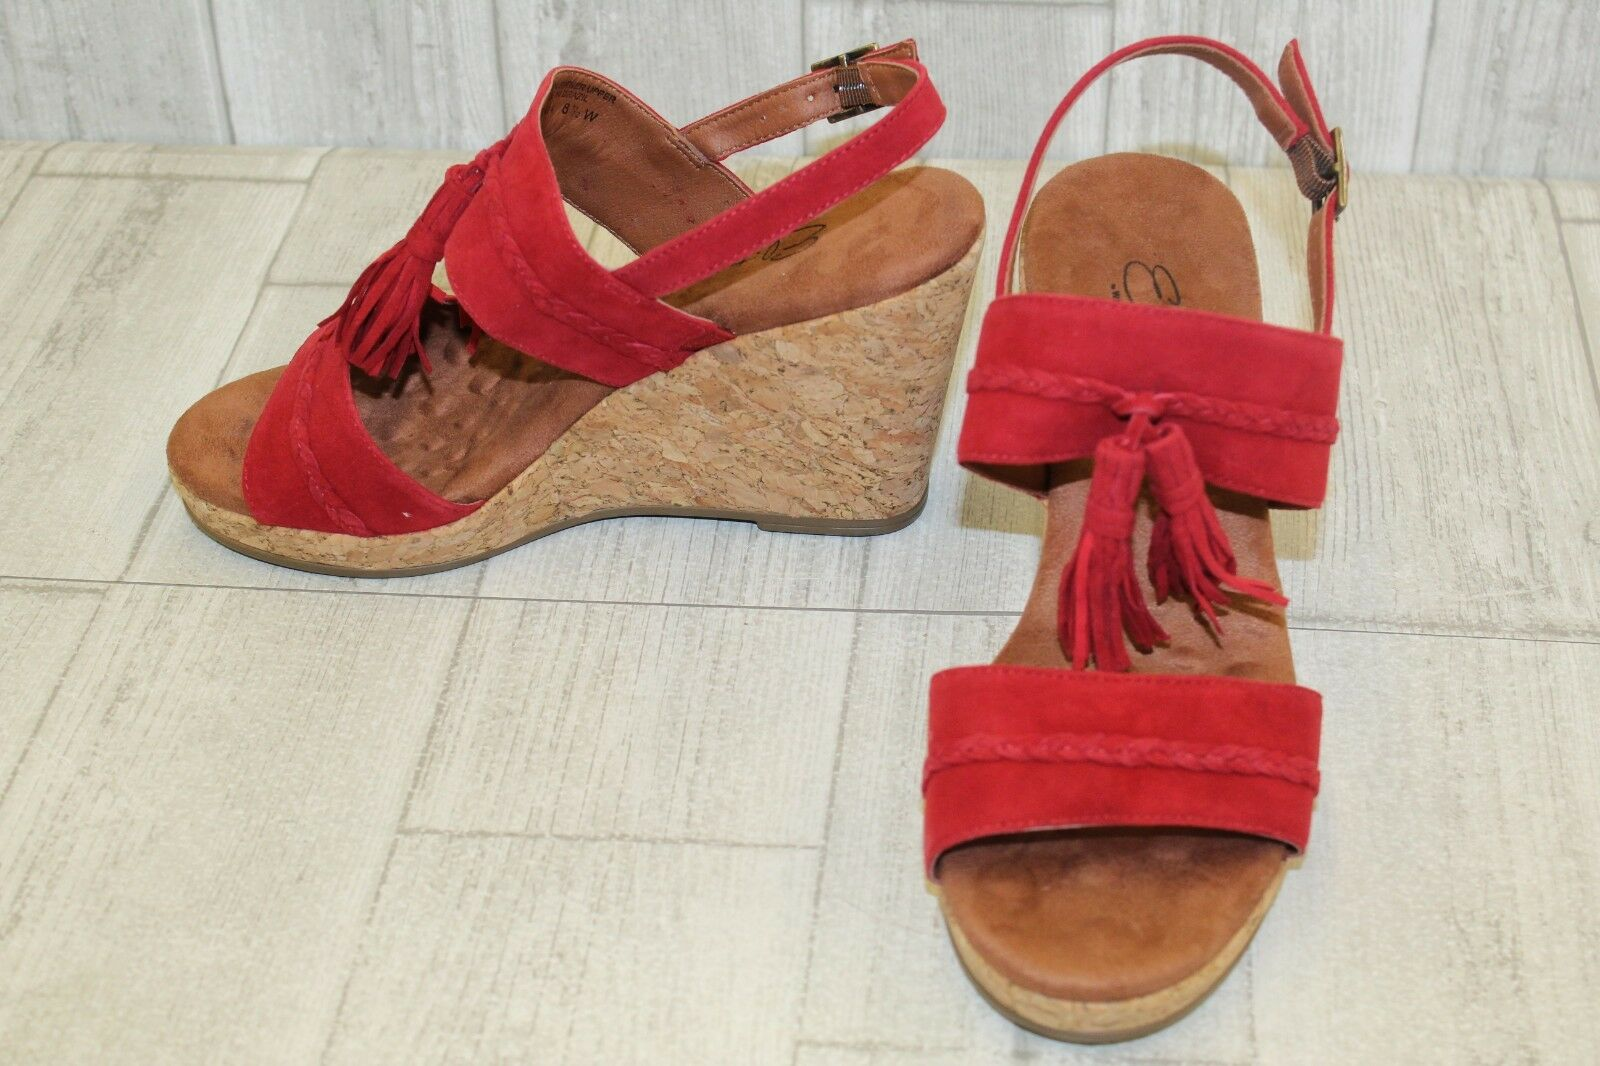 Elites By Walking Cradles Kalinda Wedge Sandals - Donna    Dimensione 8.5 W - rosso NEW  7e2f1d